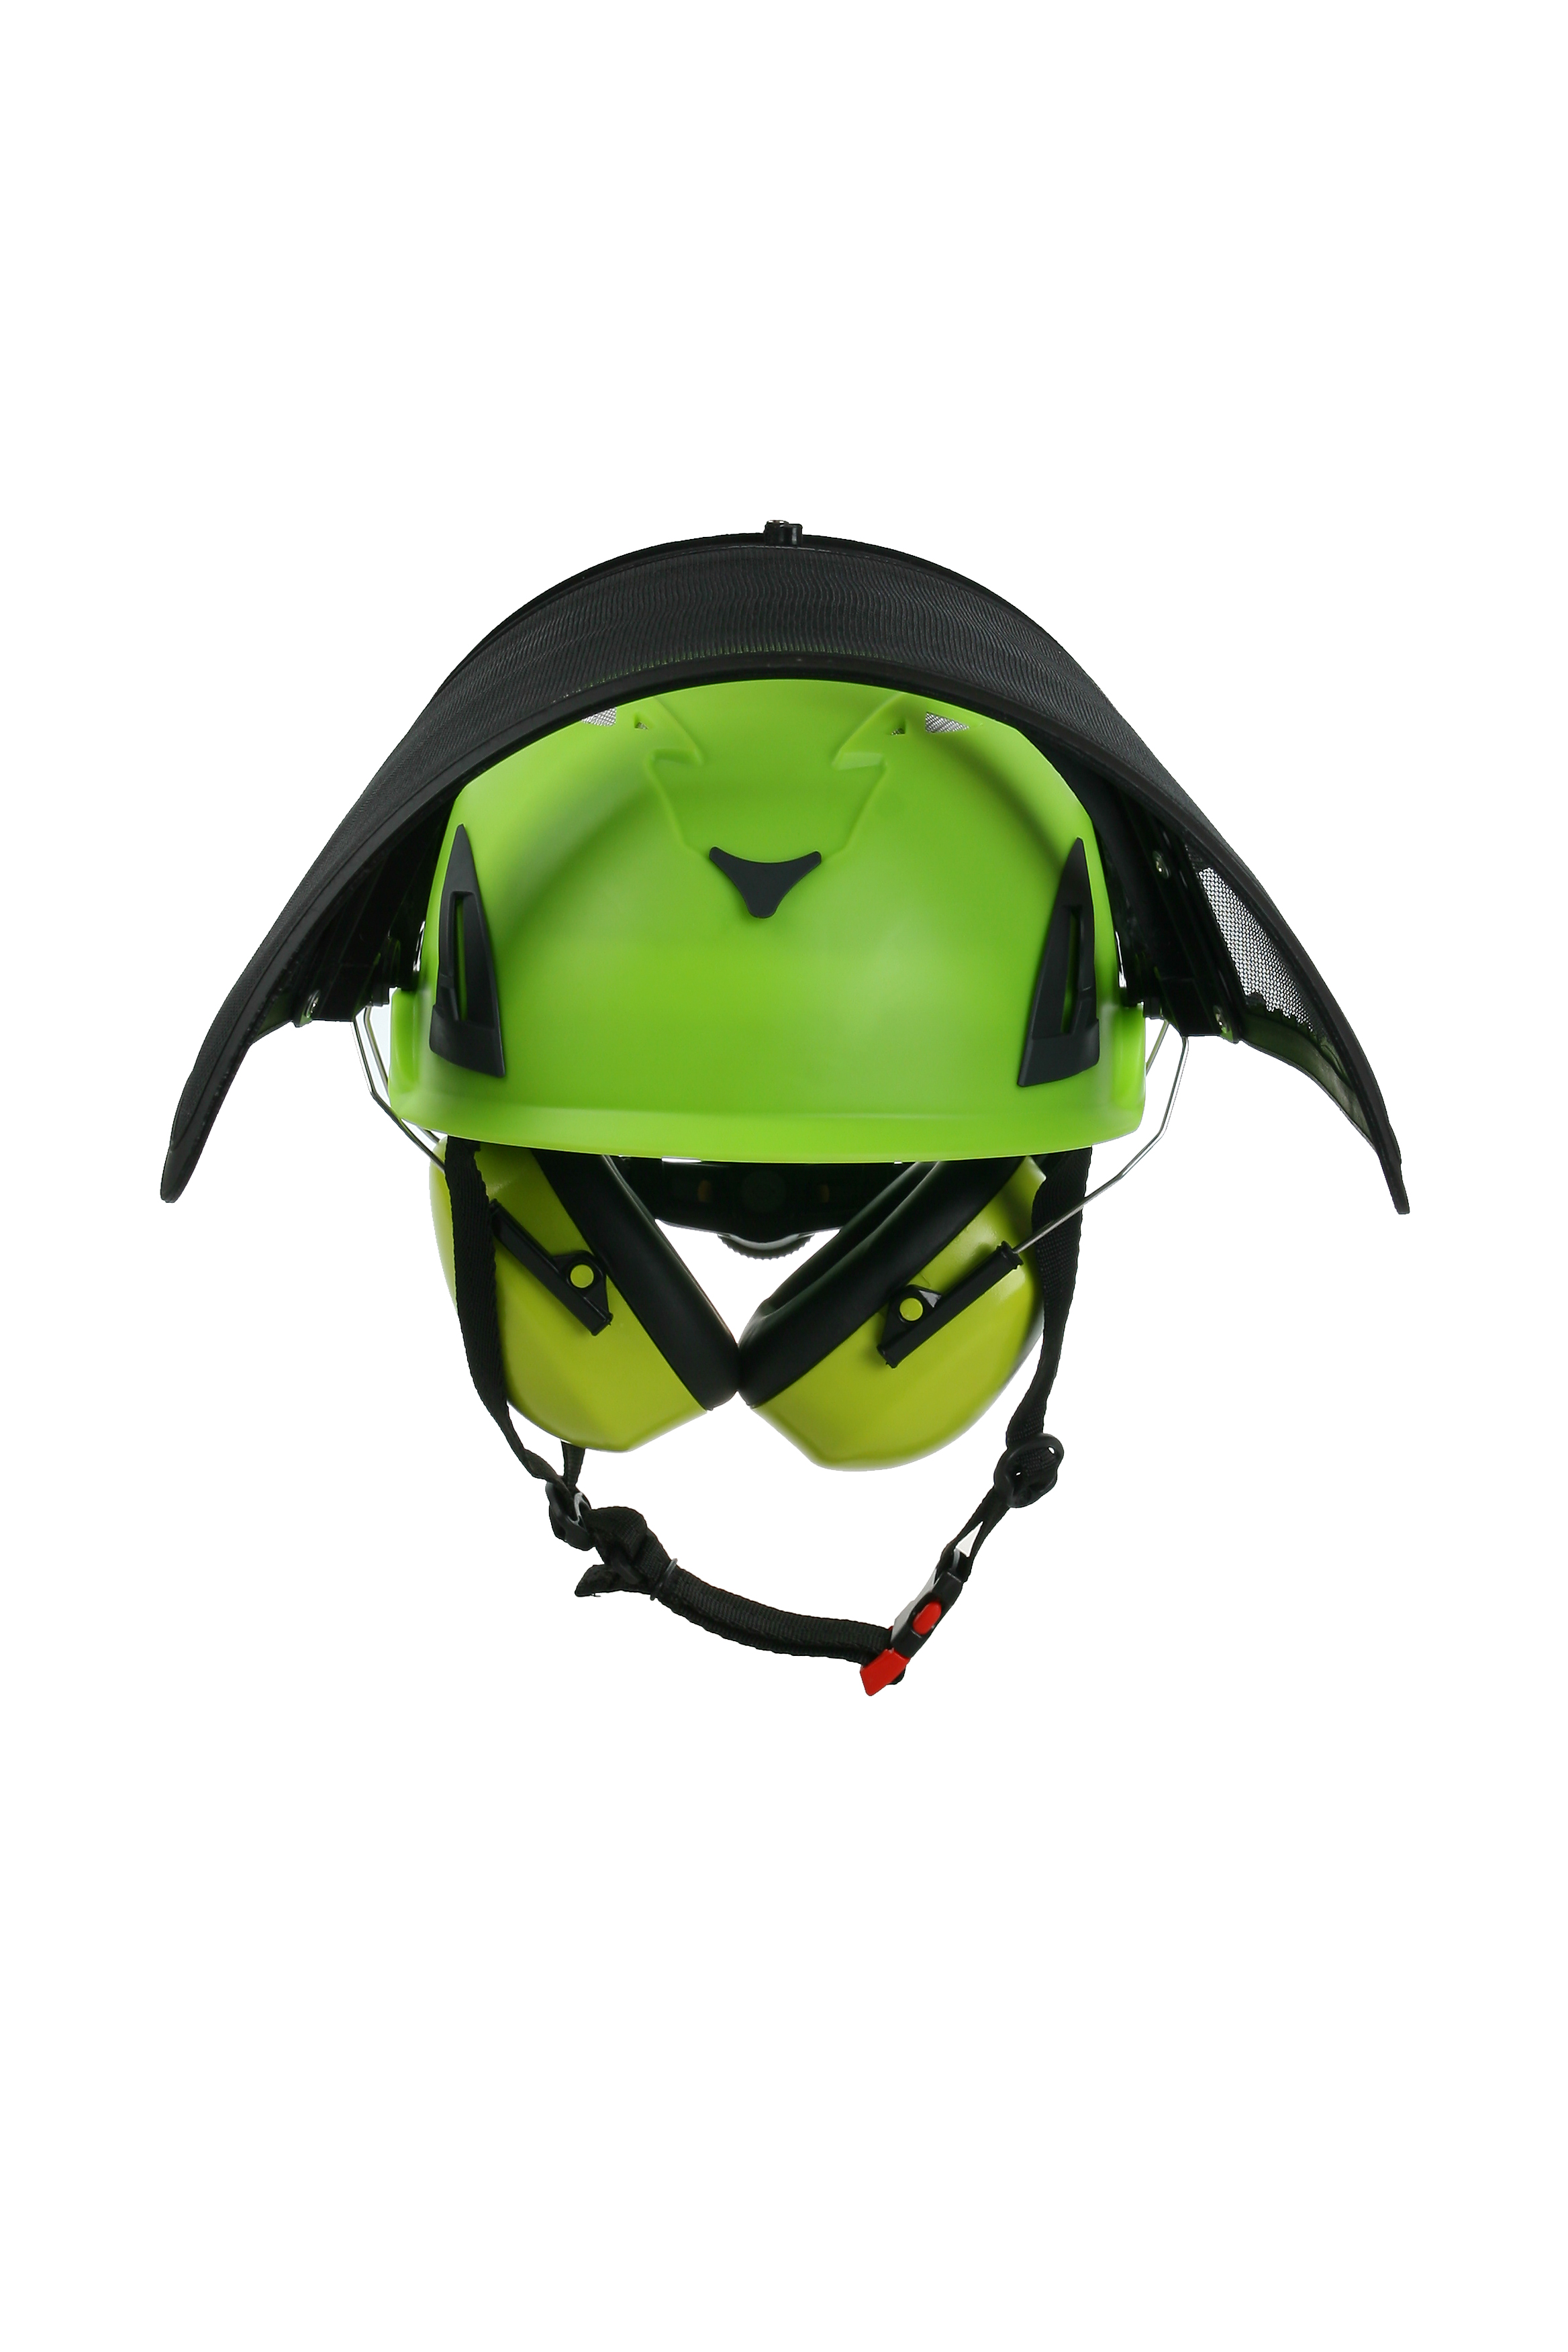 Light Weight And Shock Resistance Adult Climbing Helmet 15